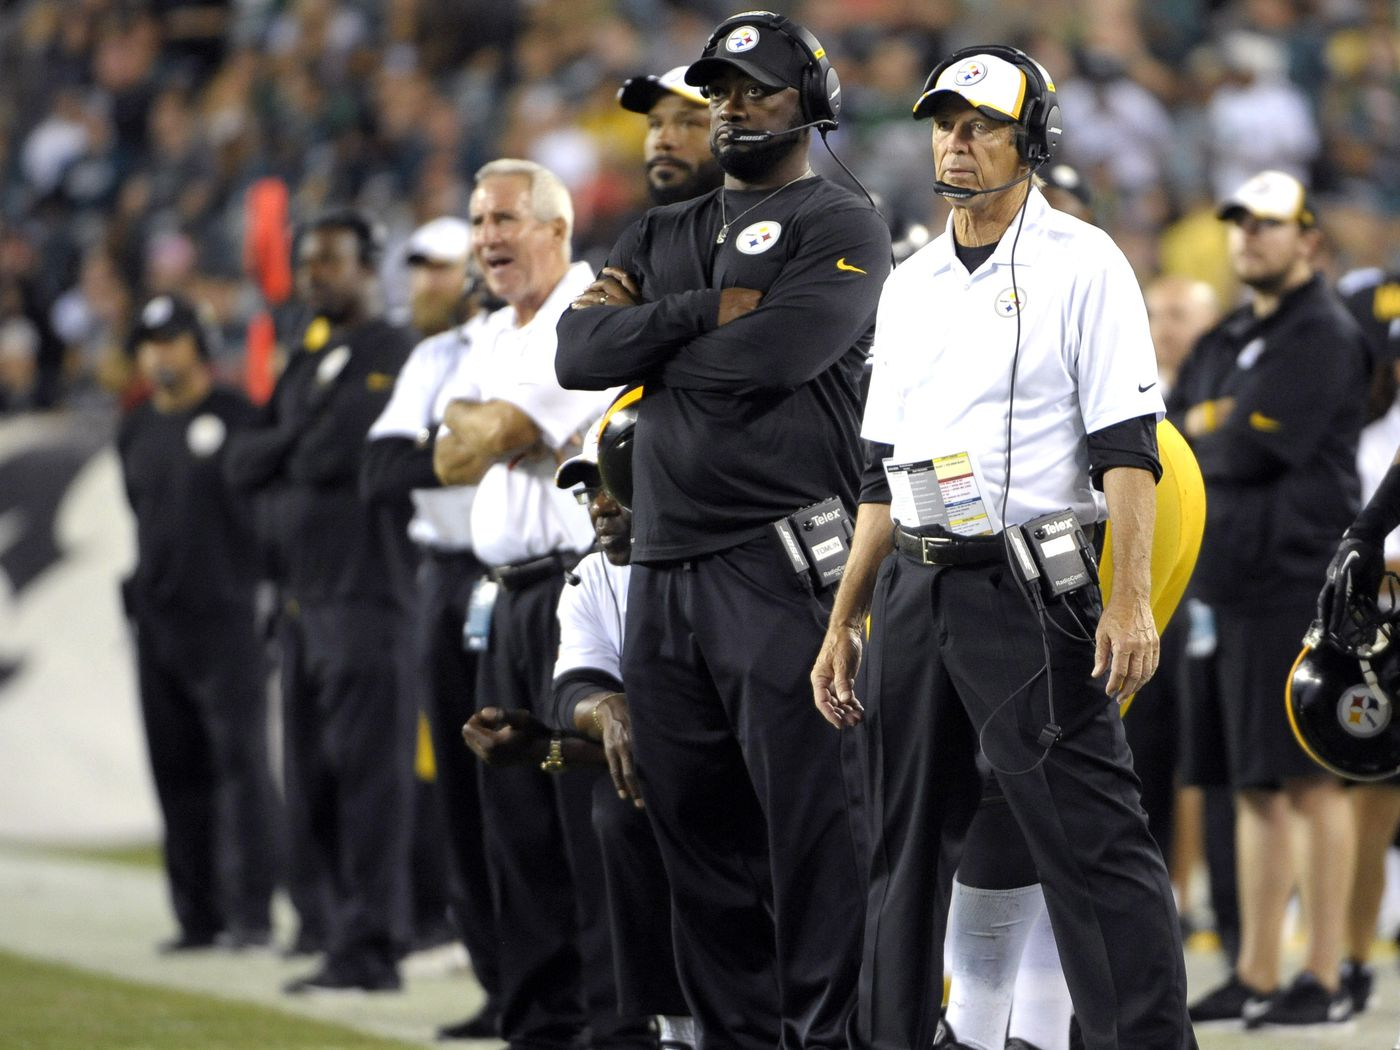 440d48b53e8 The Pittsburgh Steelers after a bye week typically equates to a win under Mike  Tomlin